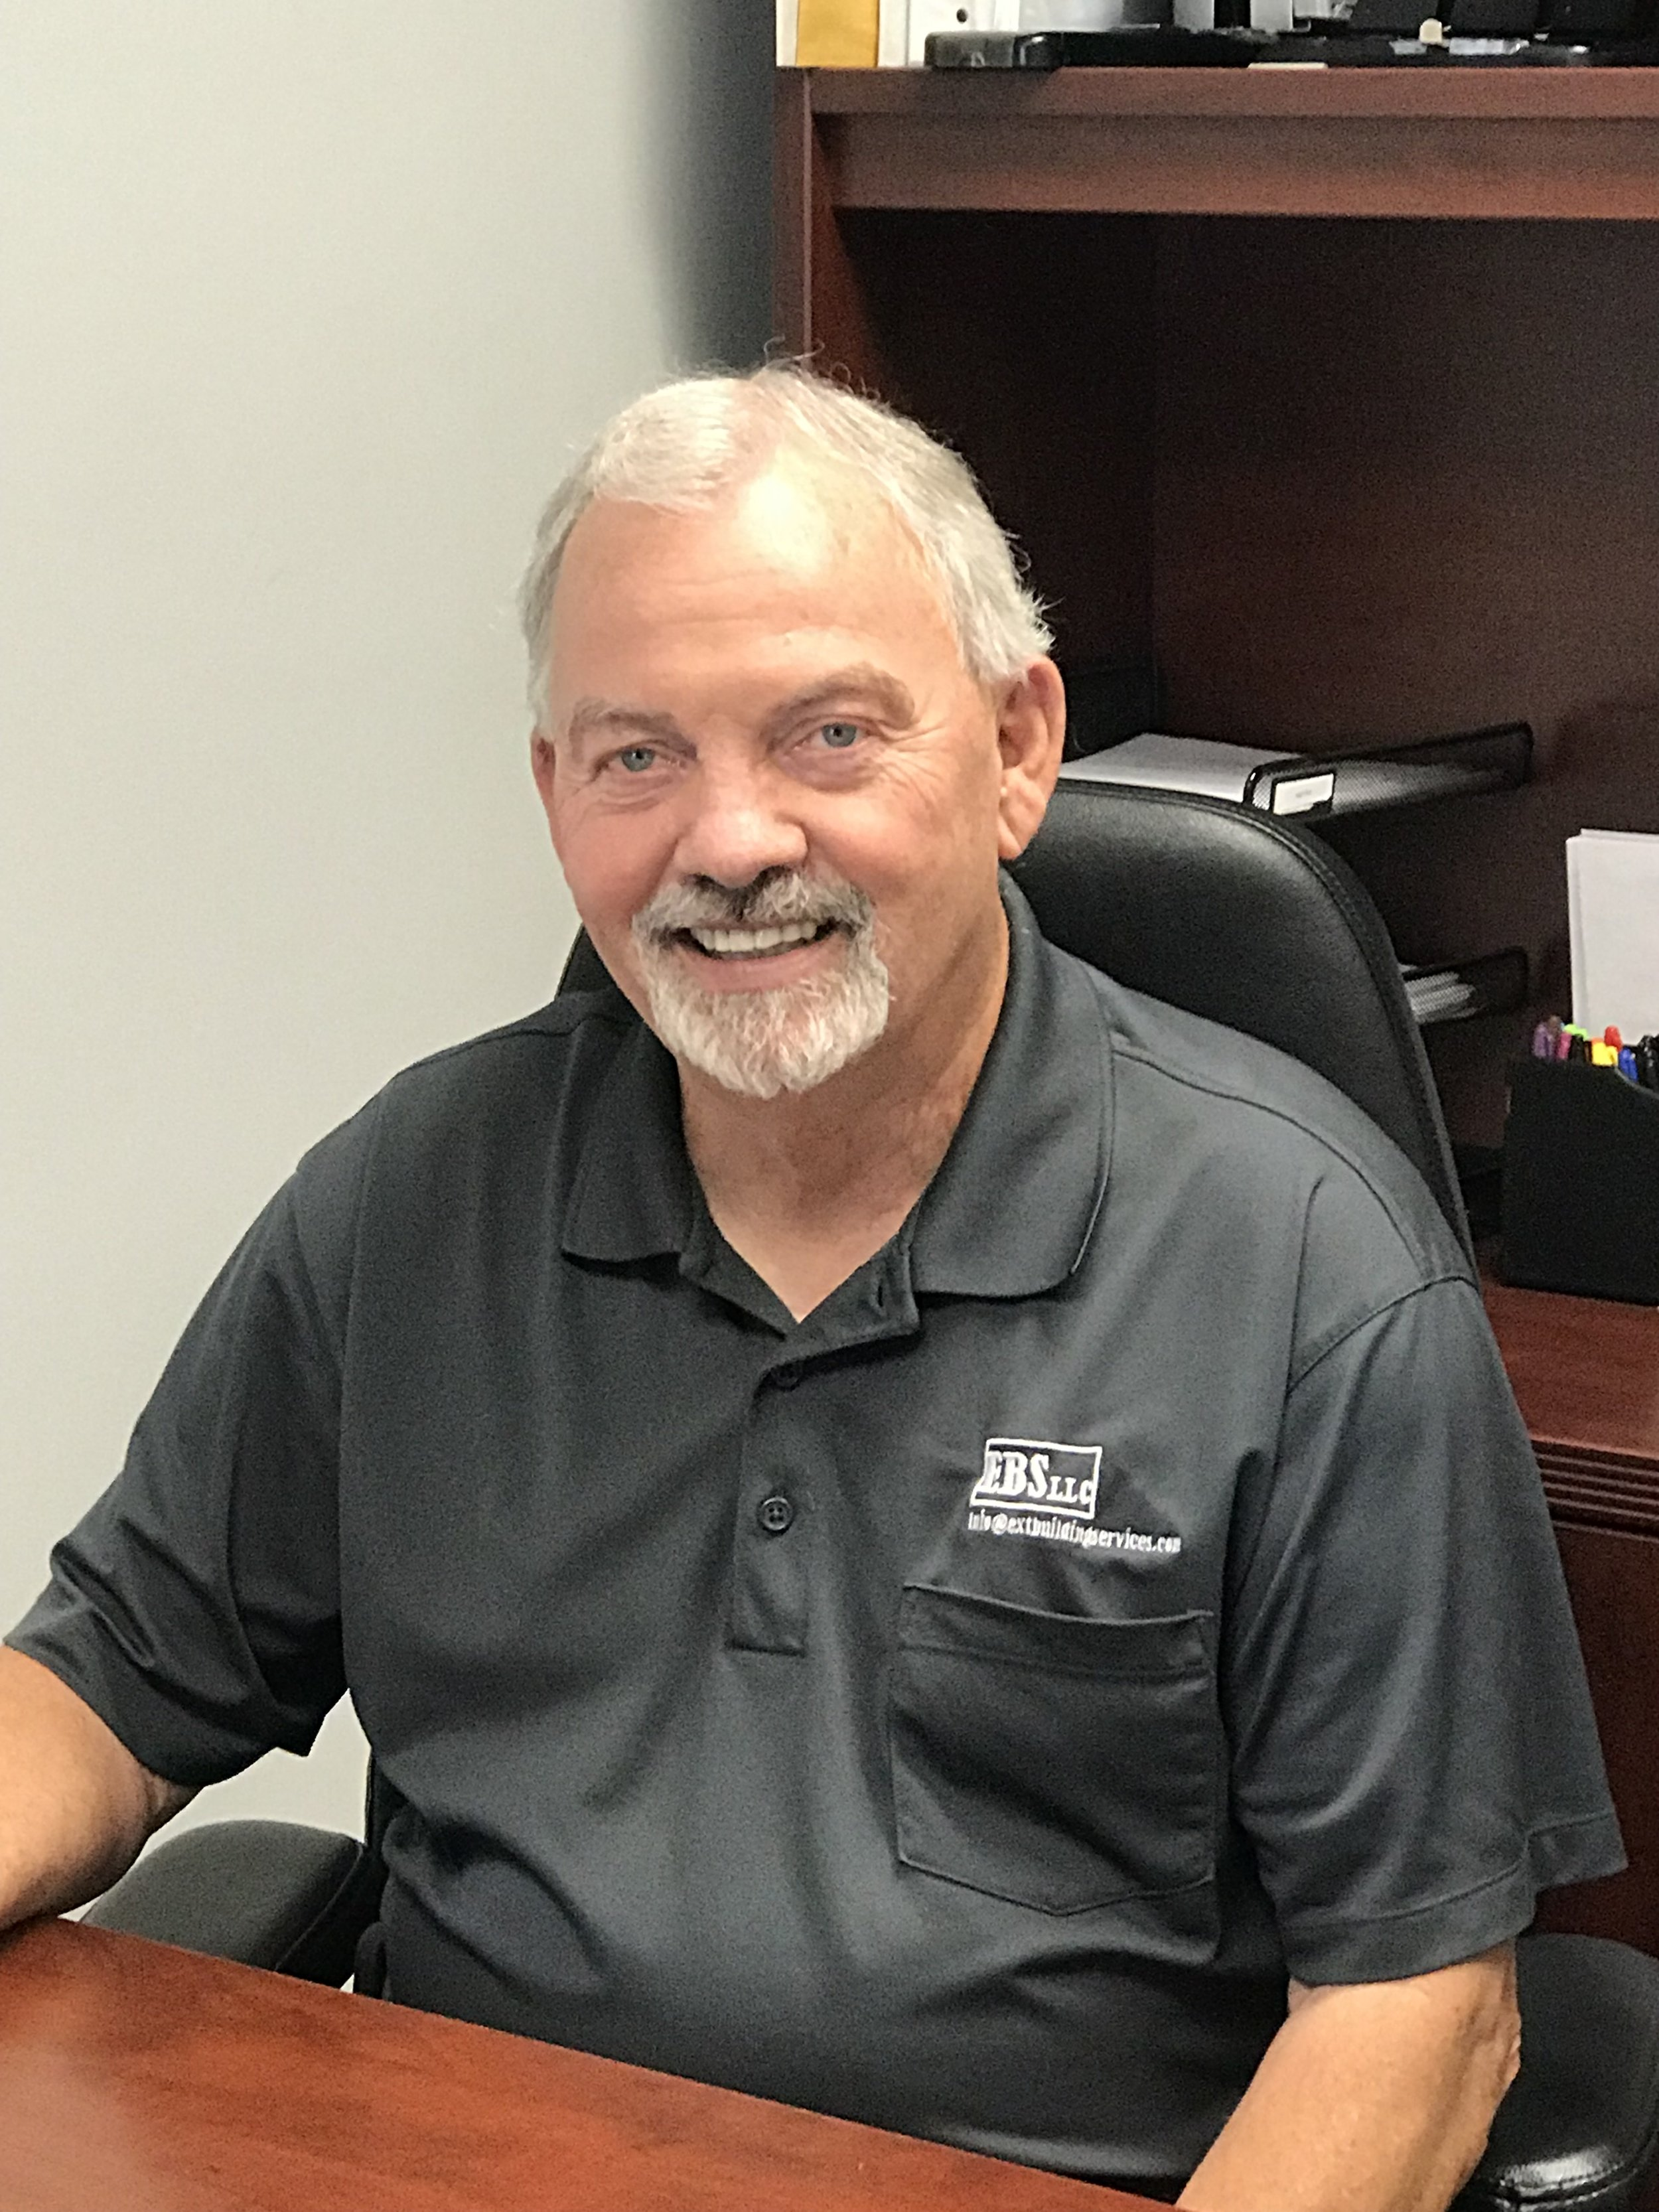 Billy Dean, Project Manager for EBS, Exterior Building Solutions